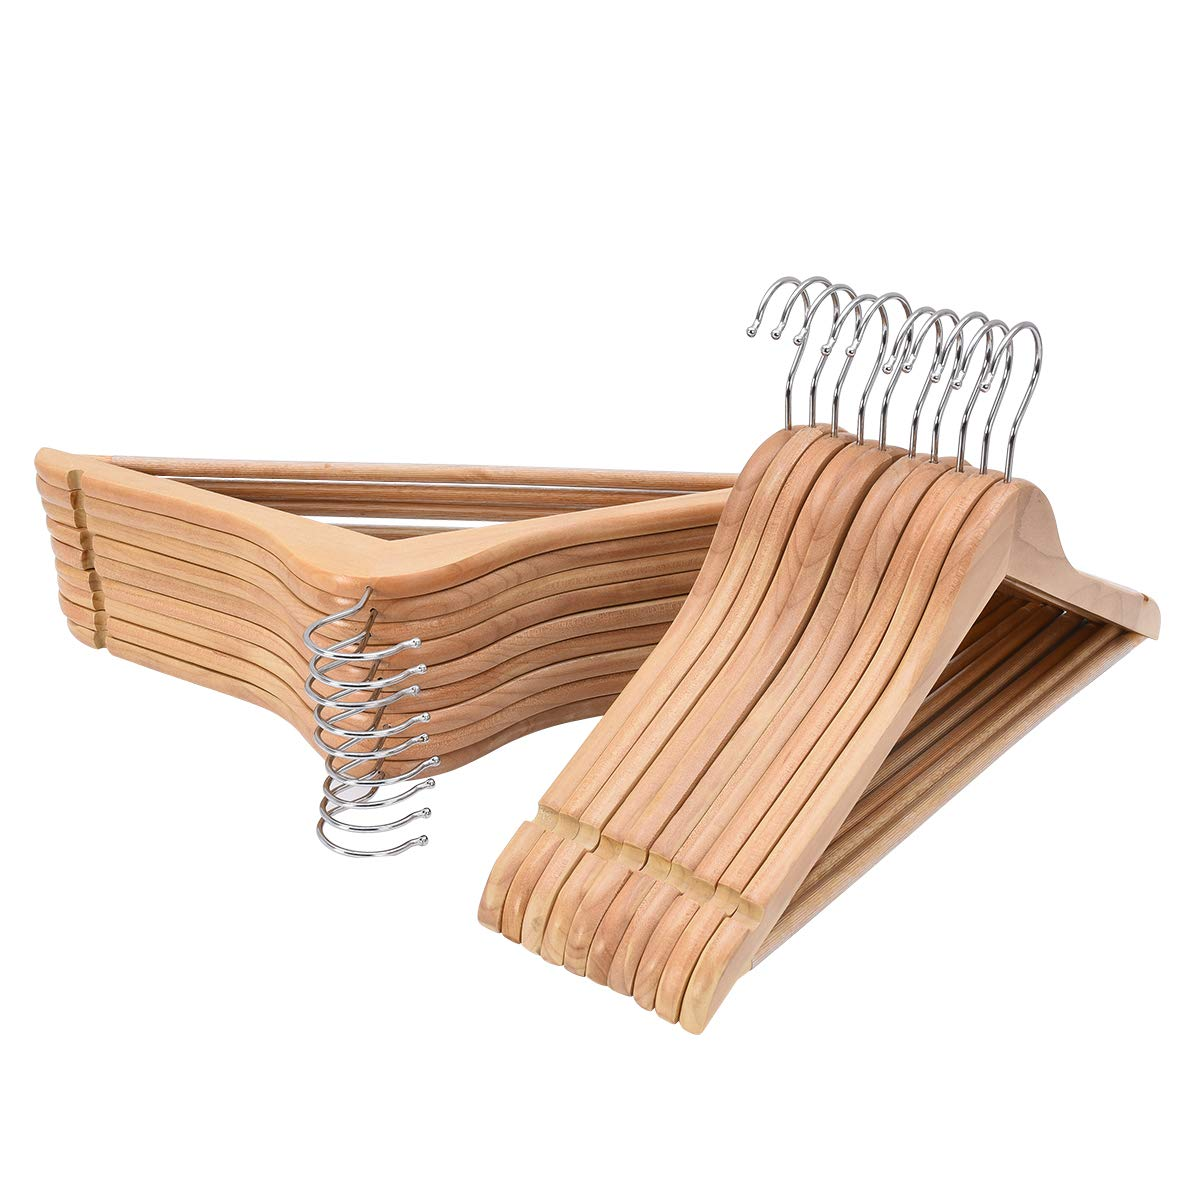 Elong Home Solid Wood Suit Hangers, Wooden Coat Hangers with Extra Smooth Finish, 360° Swivel Hook & Non-Slip Pants Bar, 20 Pack